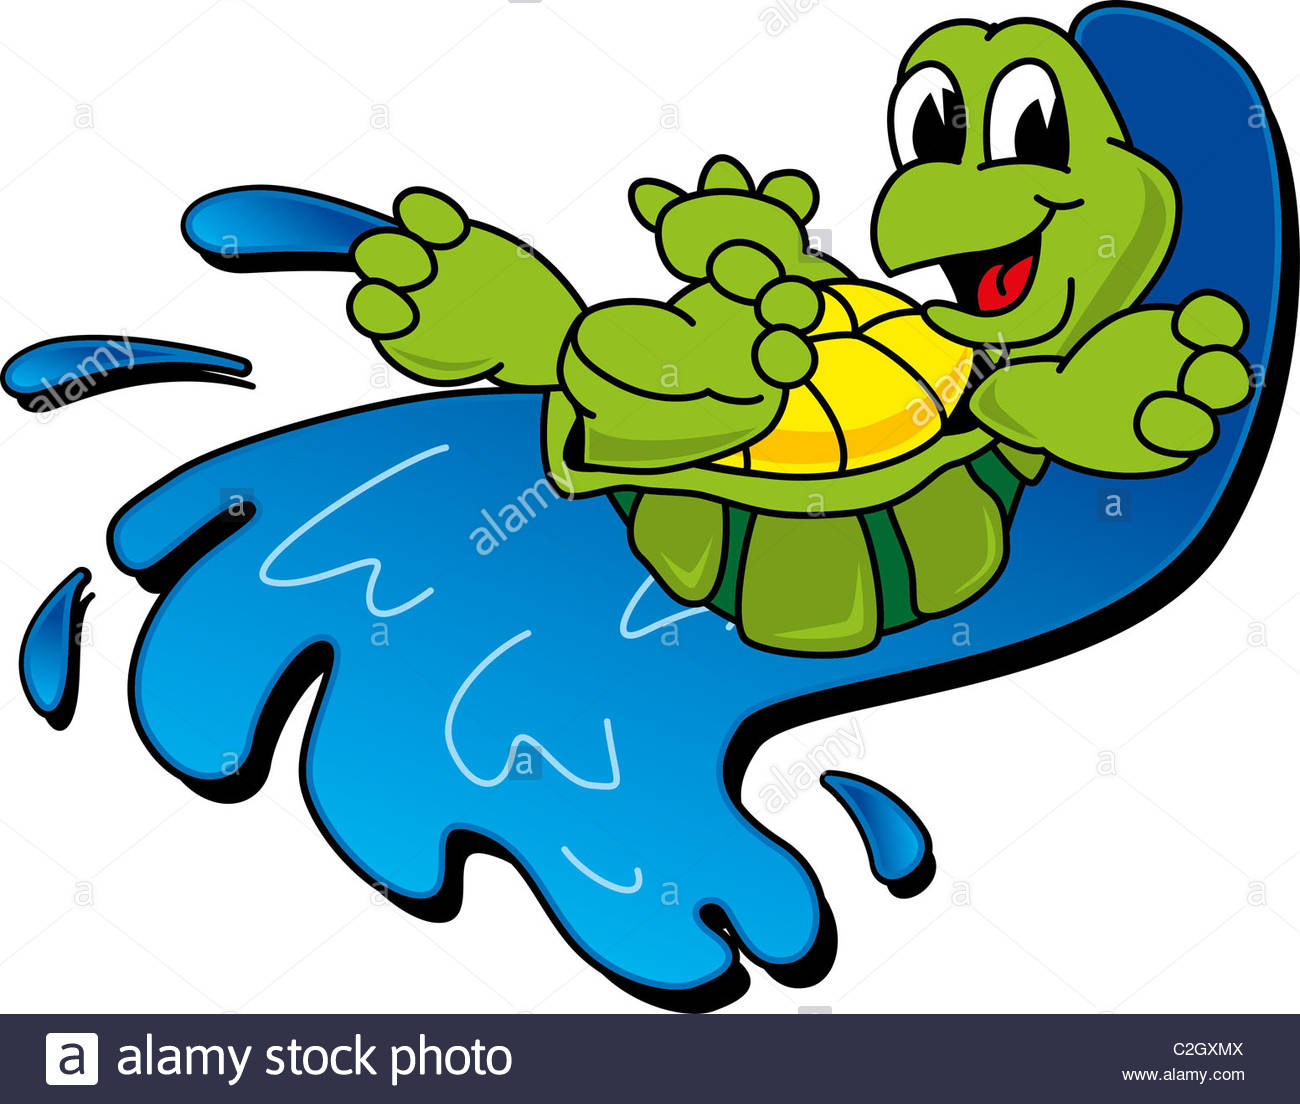 1300x1104 Cartoon Turtle Riding A Wave Stock Photo, Royalty Free Image